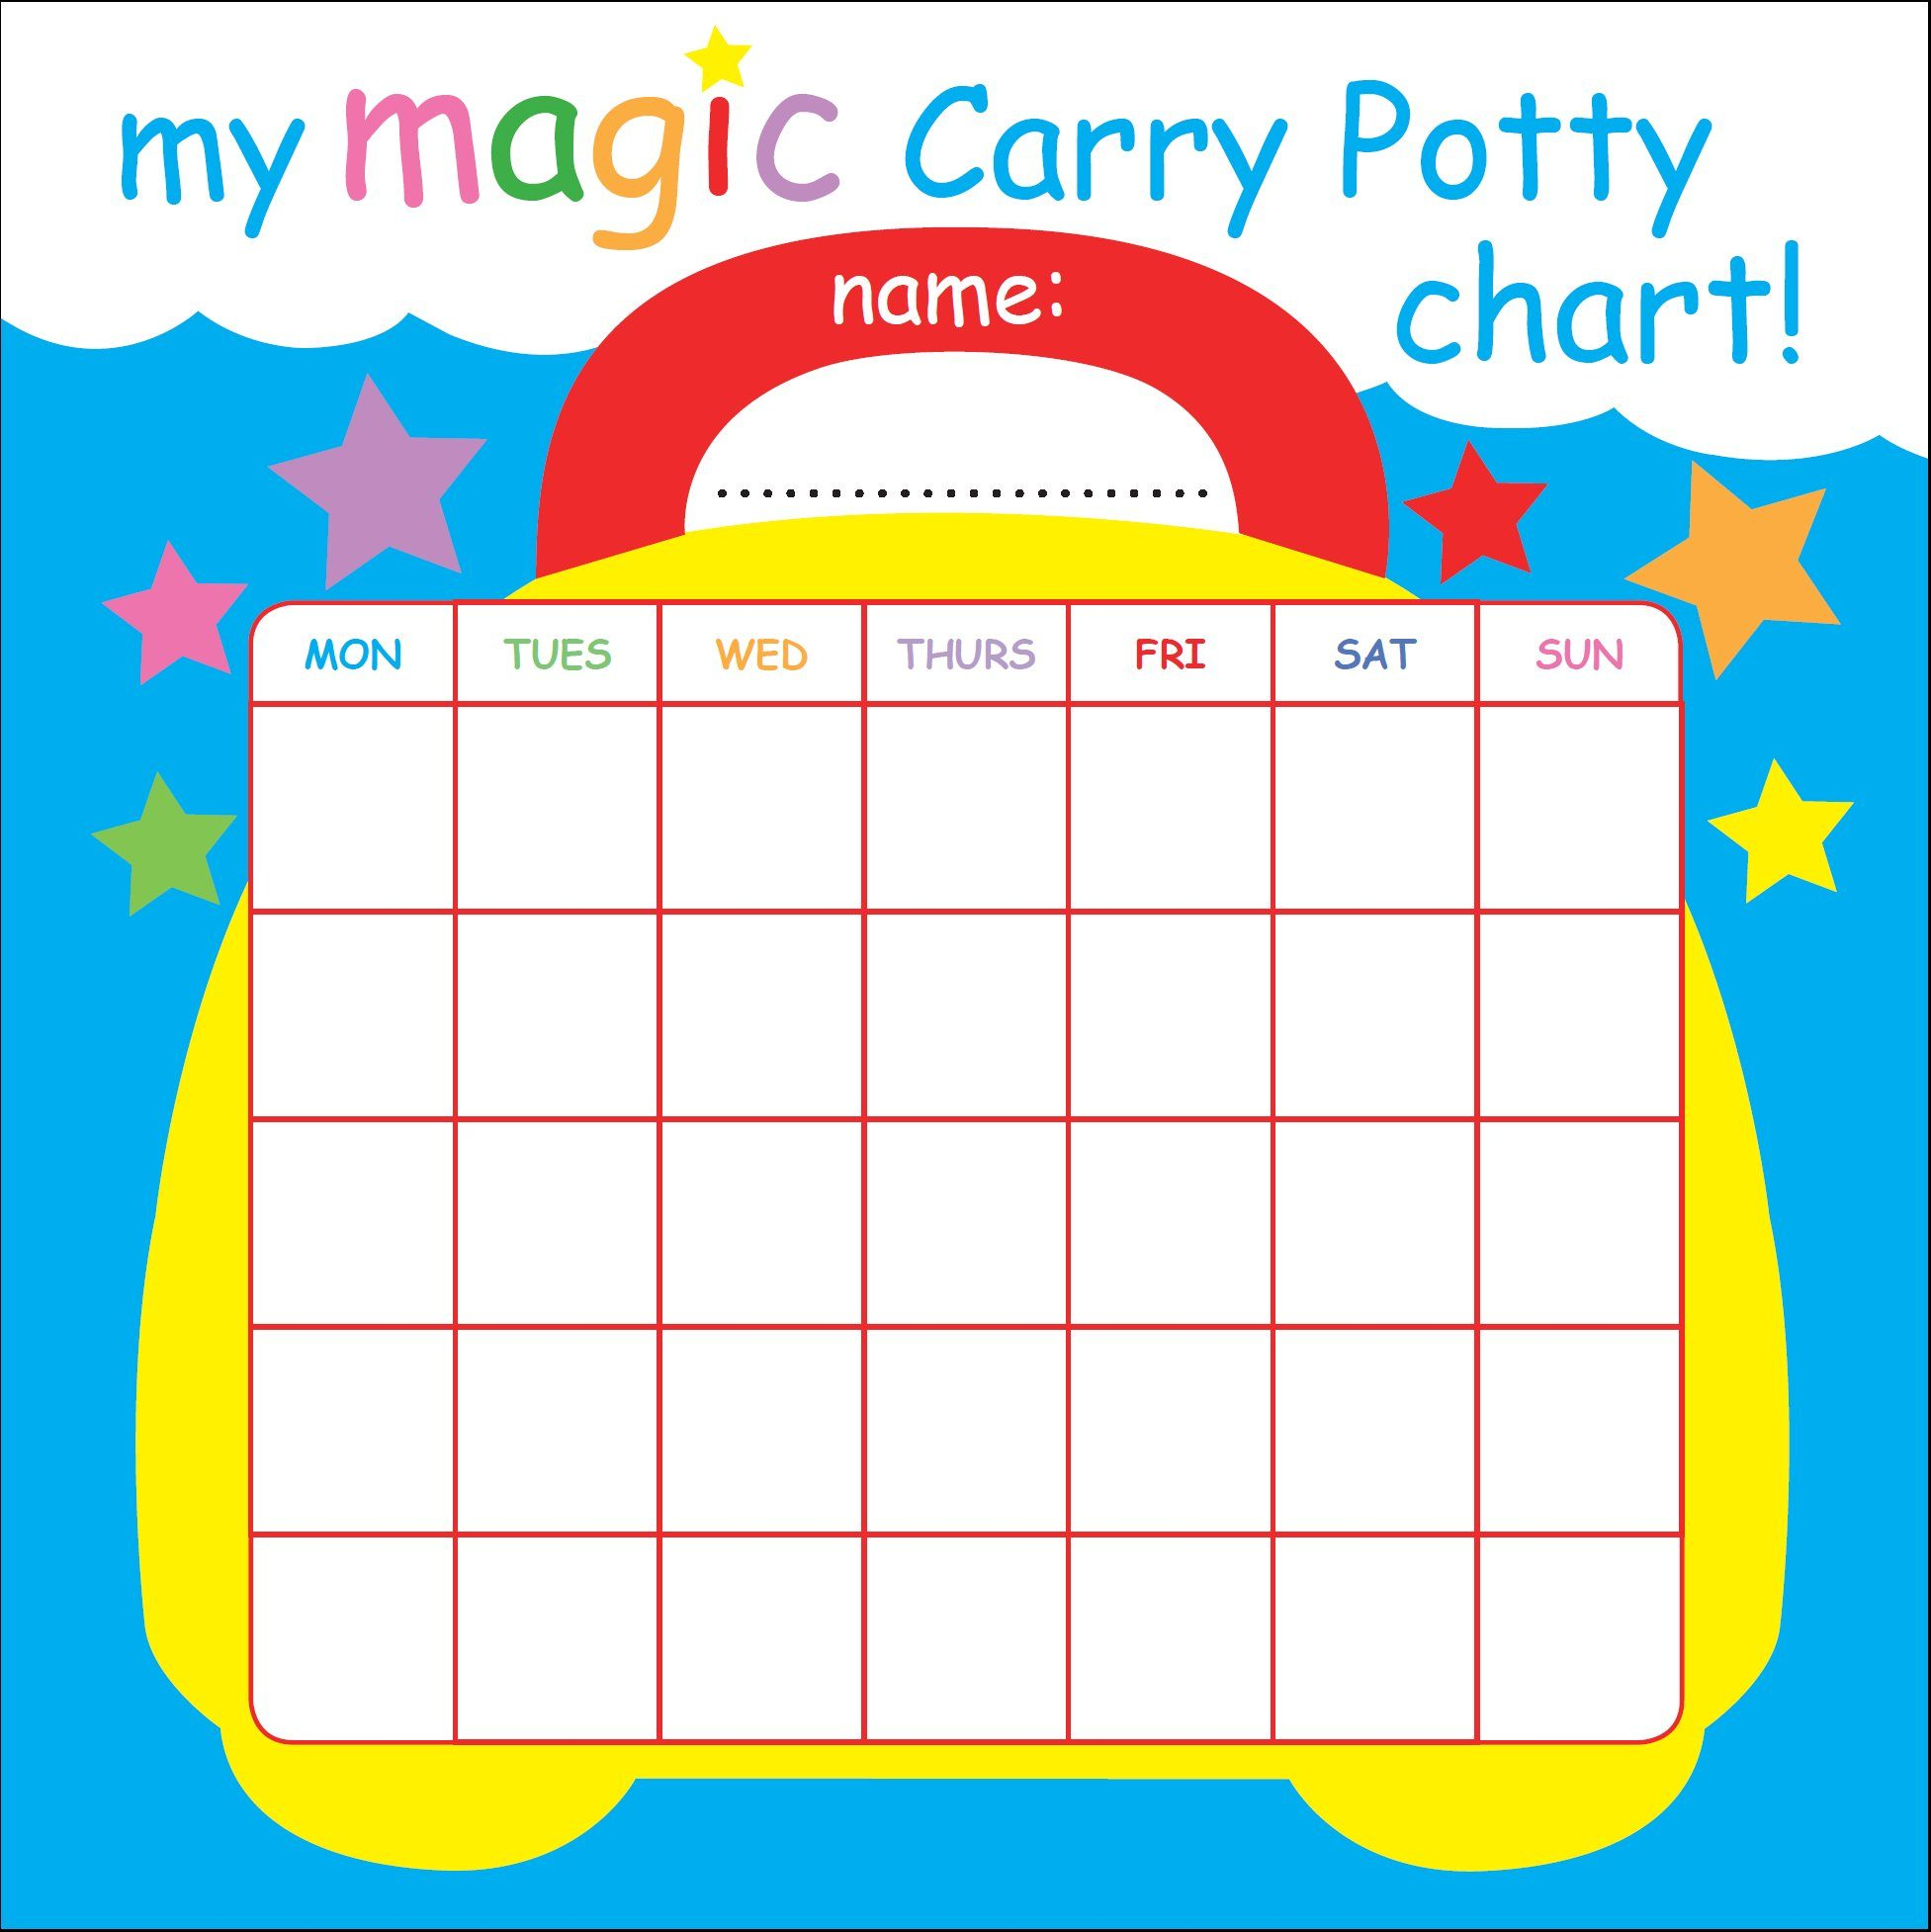 graphic about Printable Sticker Chart identify Totally free print-out gain chart for your potty exercising little one